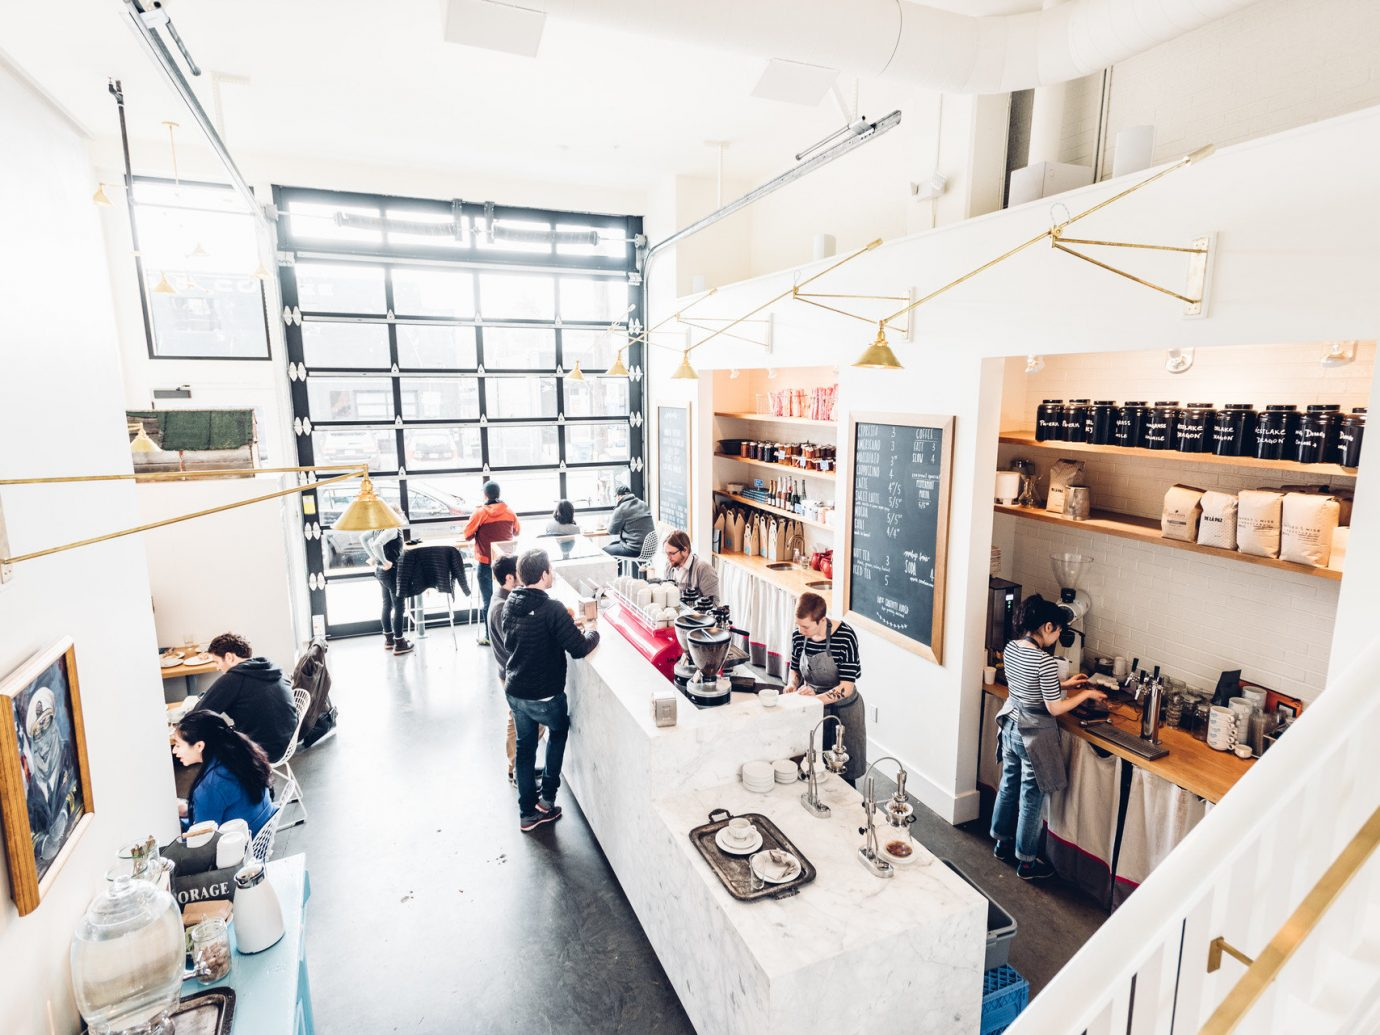 airy barista café chic clean coffee coffee shop Health + Wellness Hip interior natural light people tables Travel Tips trendy urban white window windows indoor wall room Design interior design cluttered